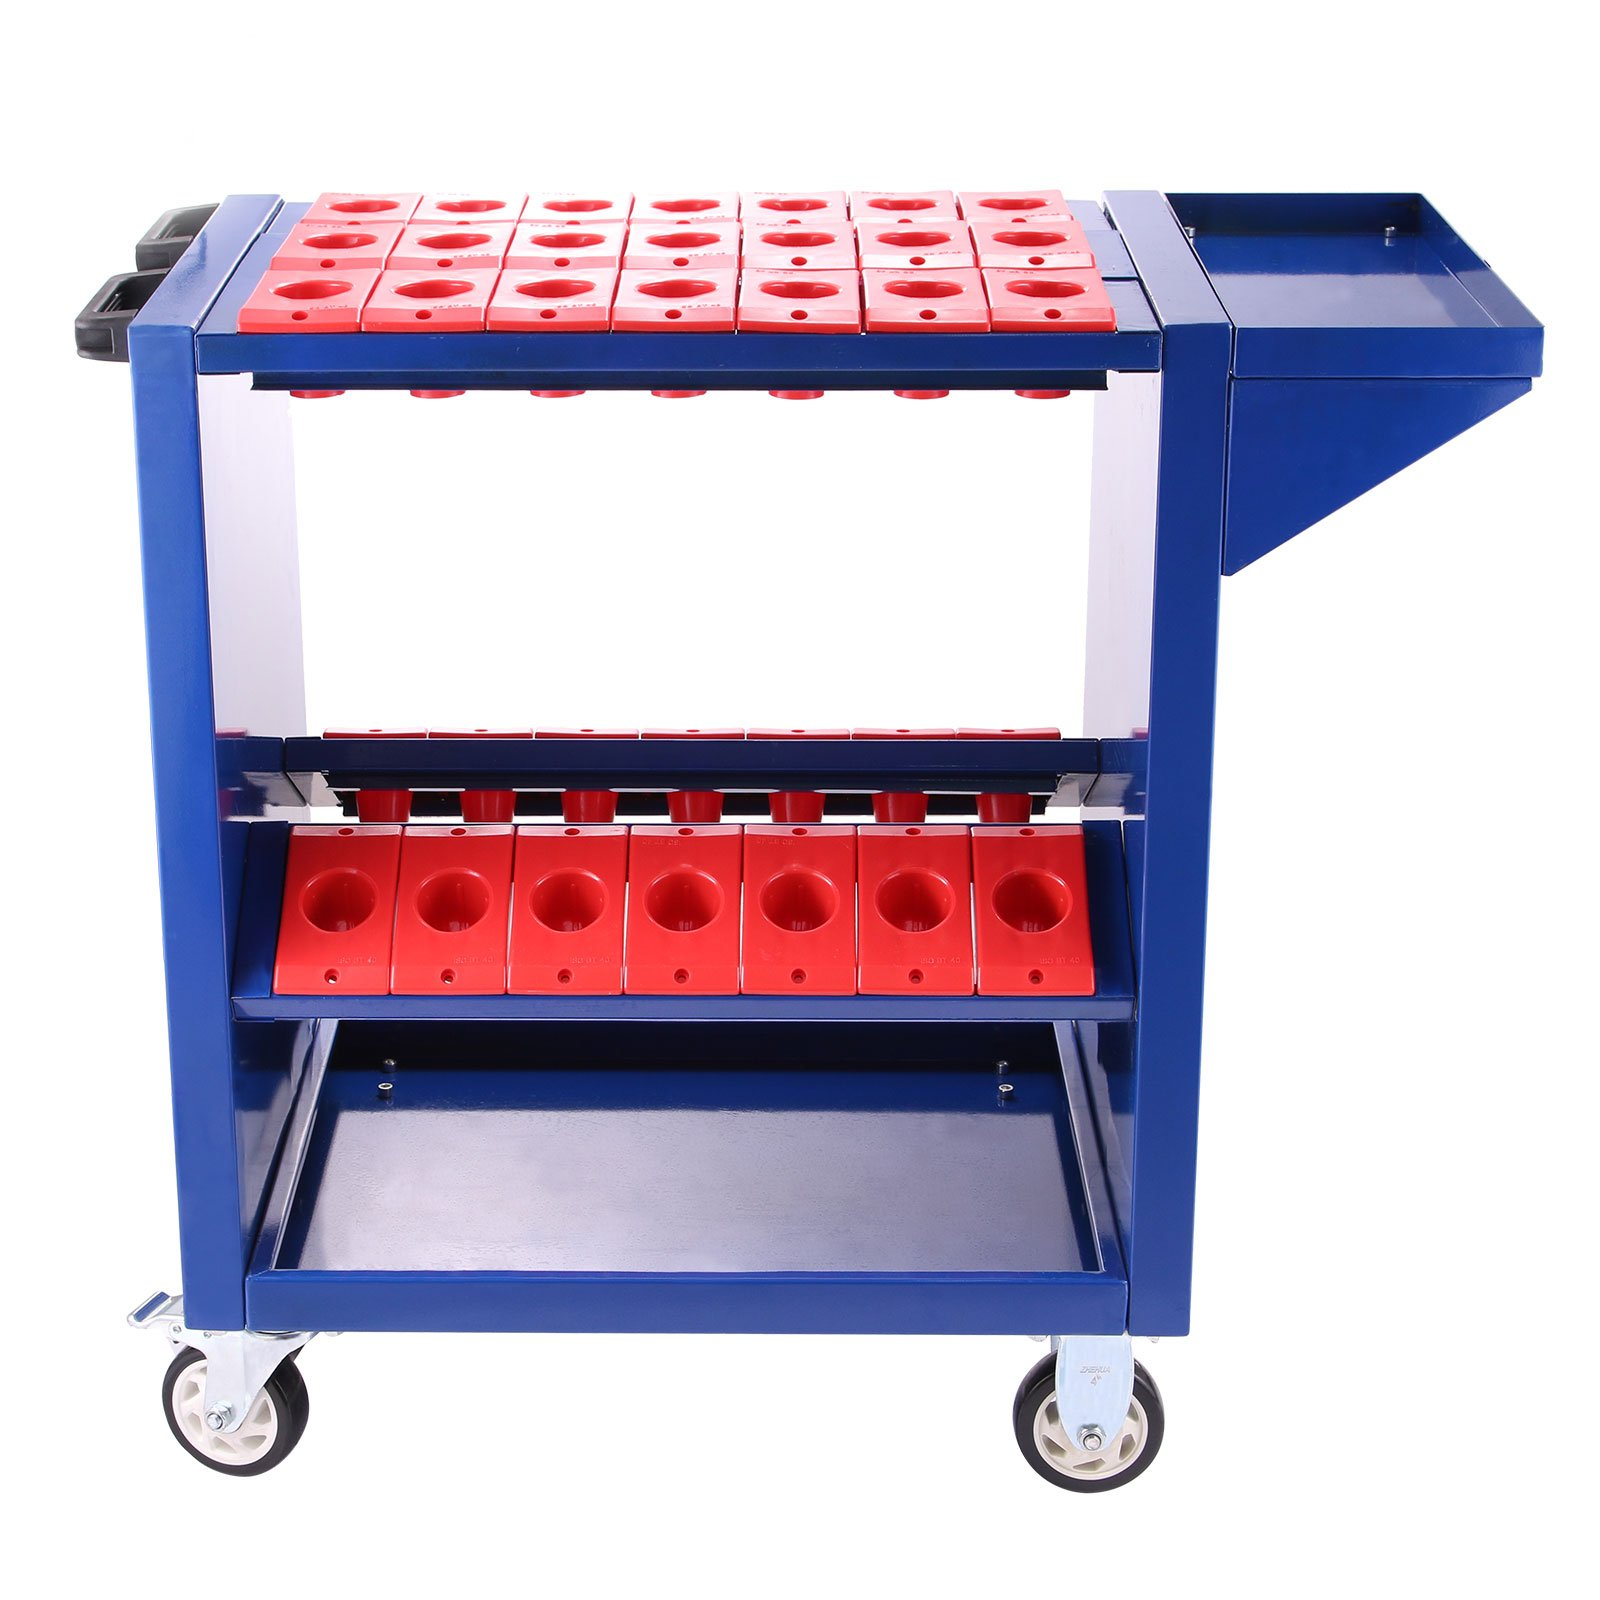 Happybuy Tool Cart Heavy Duty 35 capacity Tool Trolley CAT40 BT40 Service Cart Tools with 2 Storage Trays (BT40 blue)